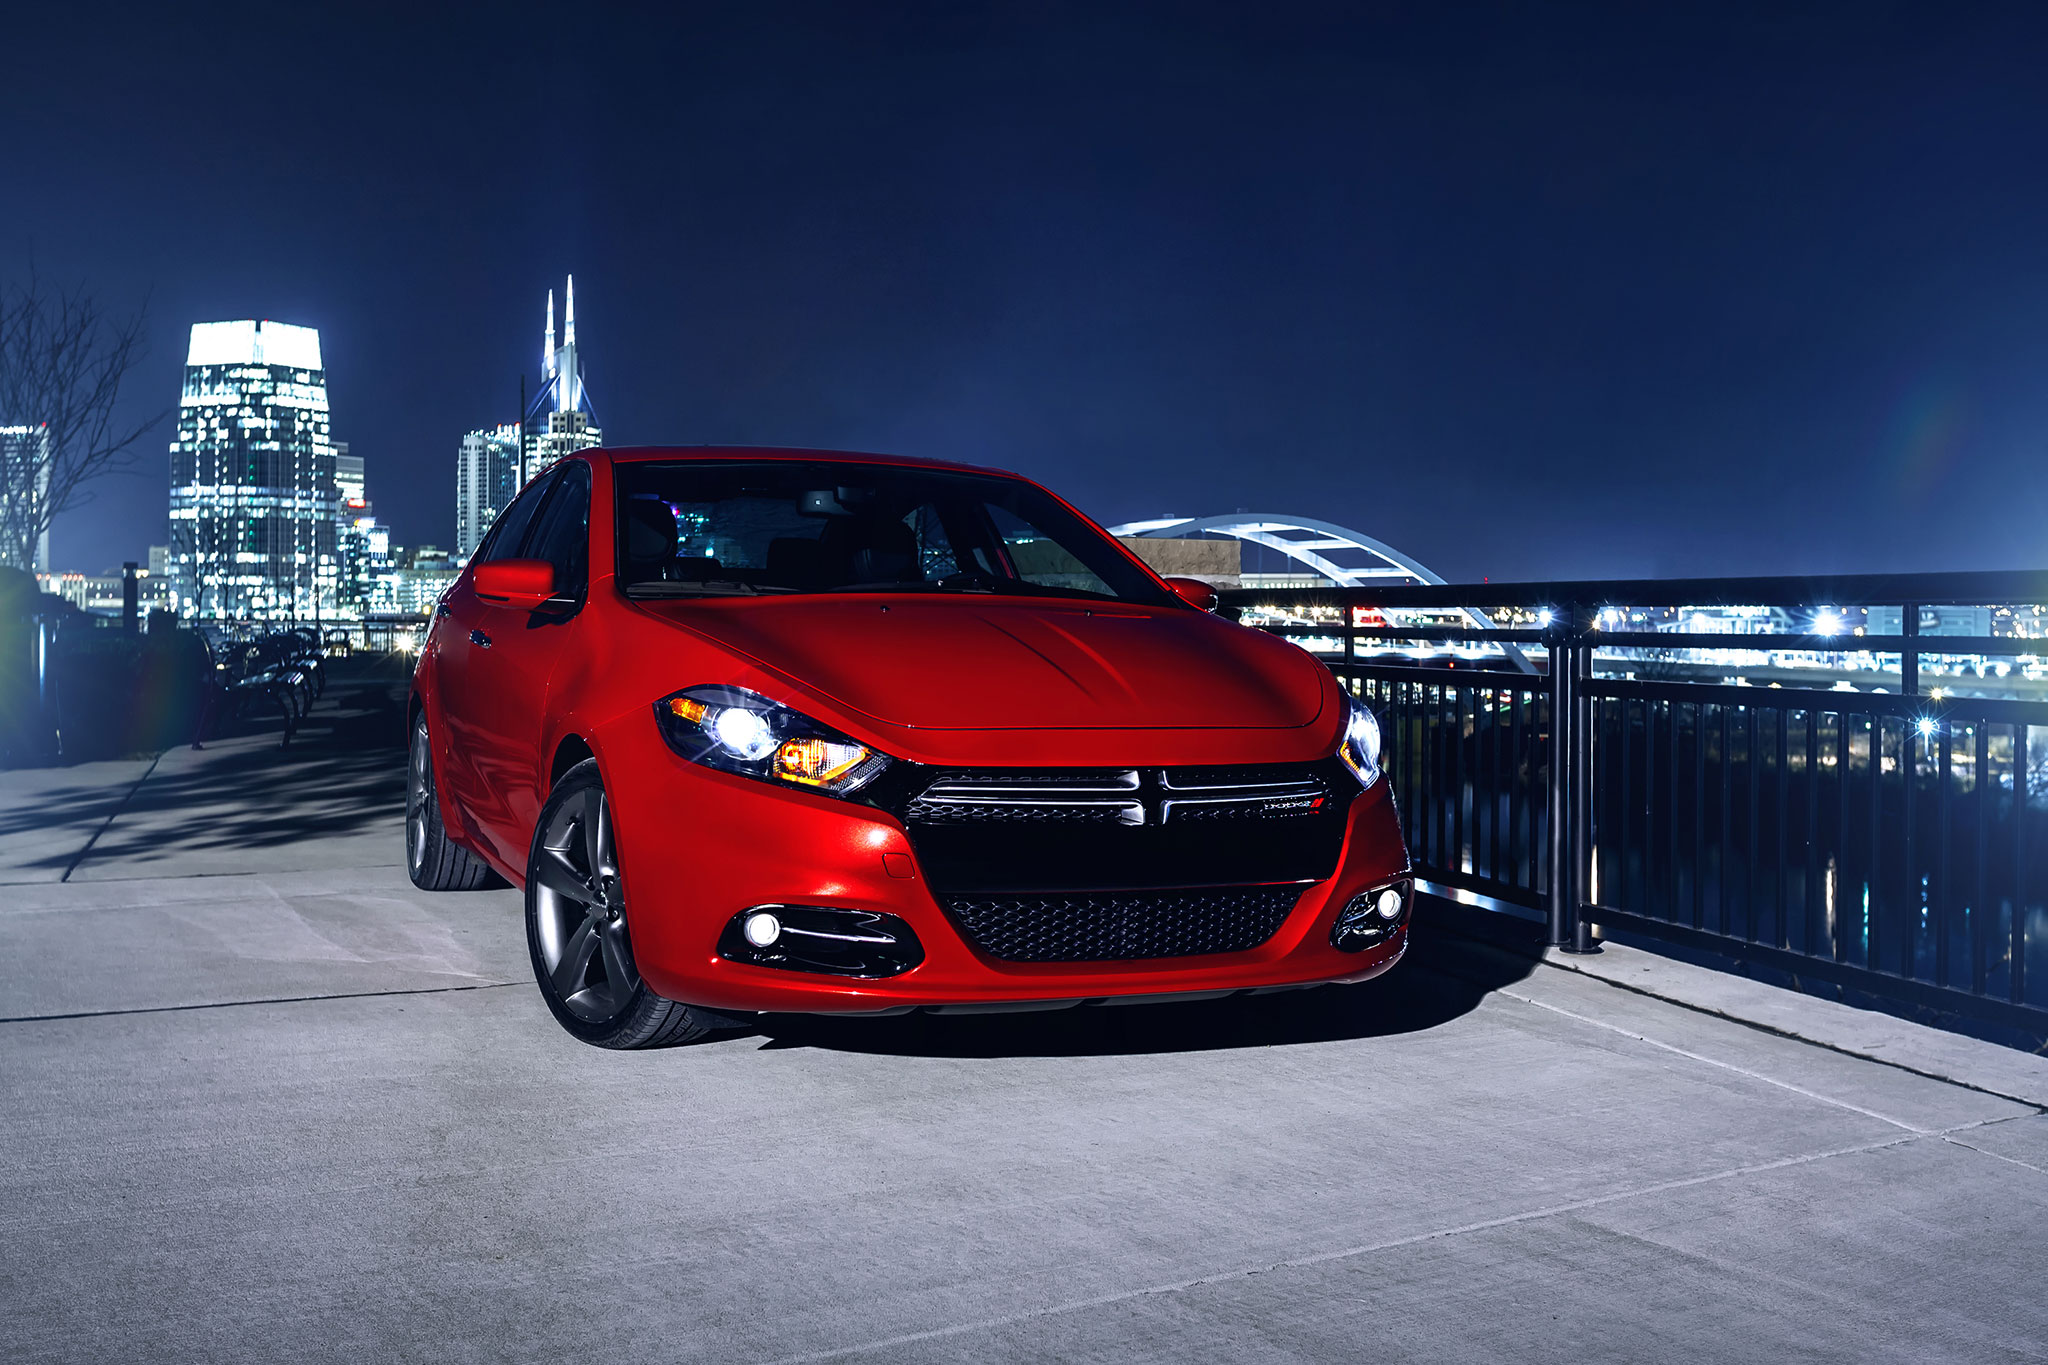 2014 Dodge Dart GT Front View1